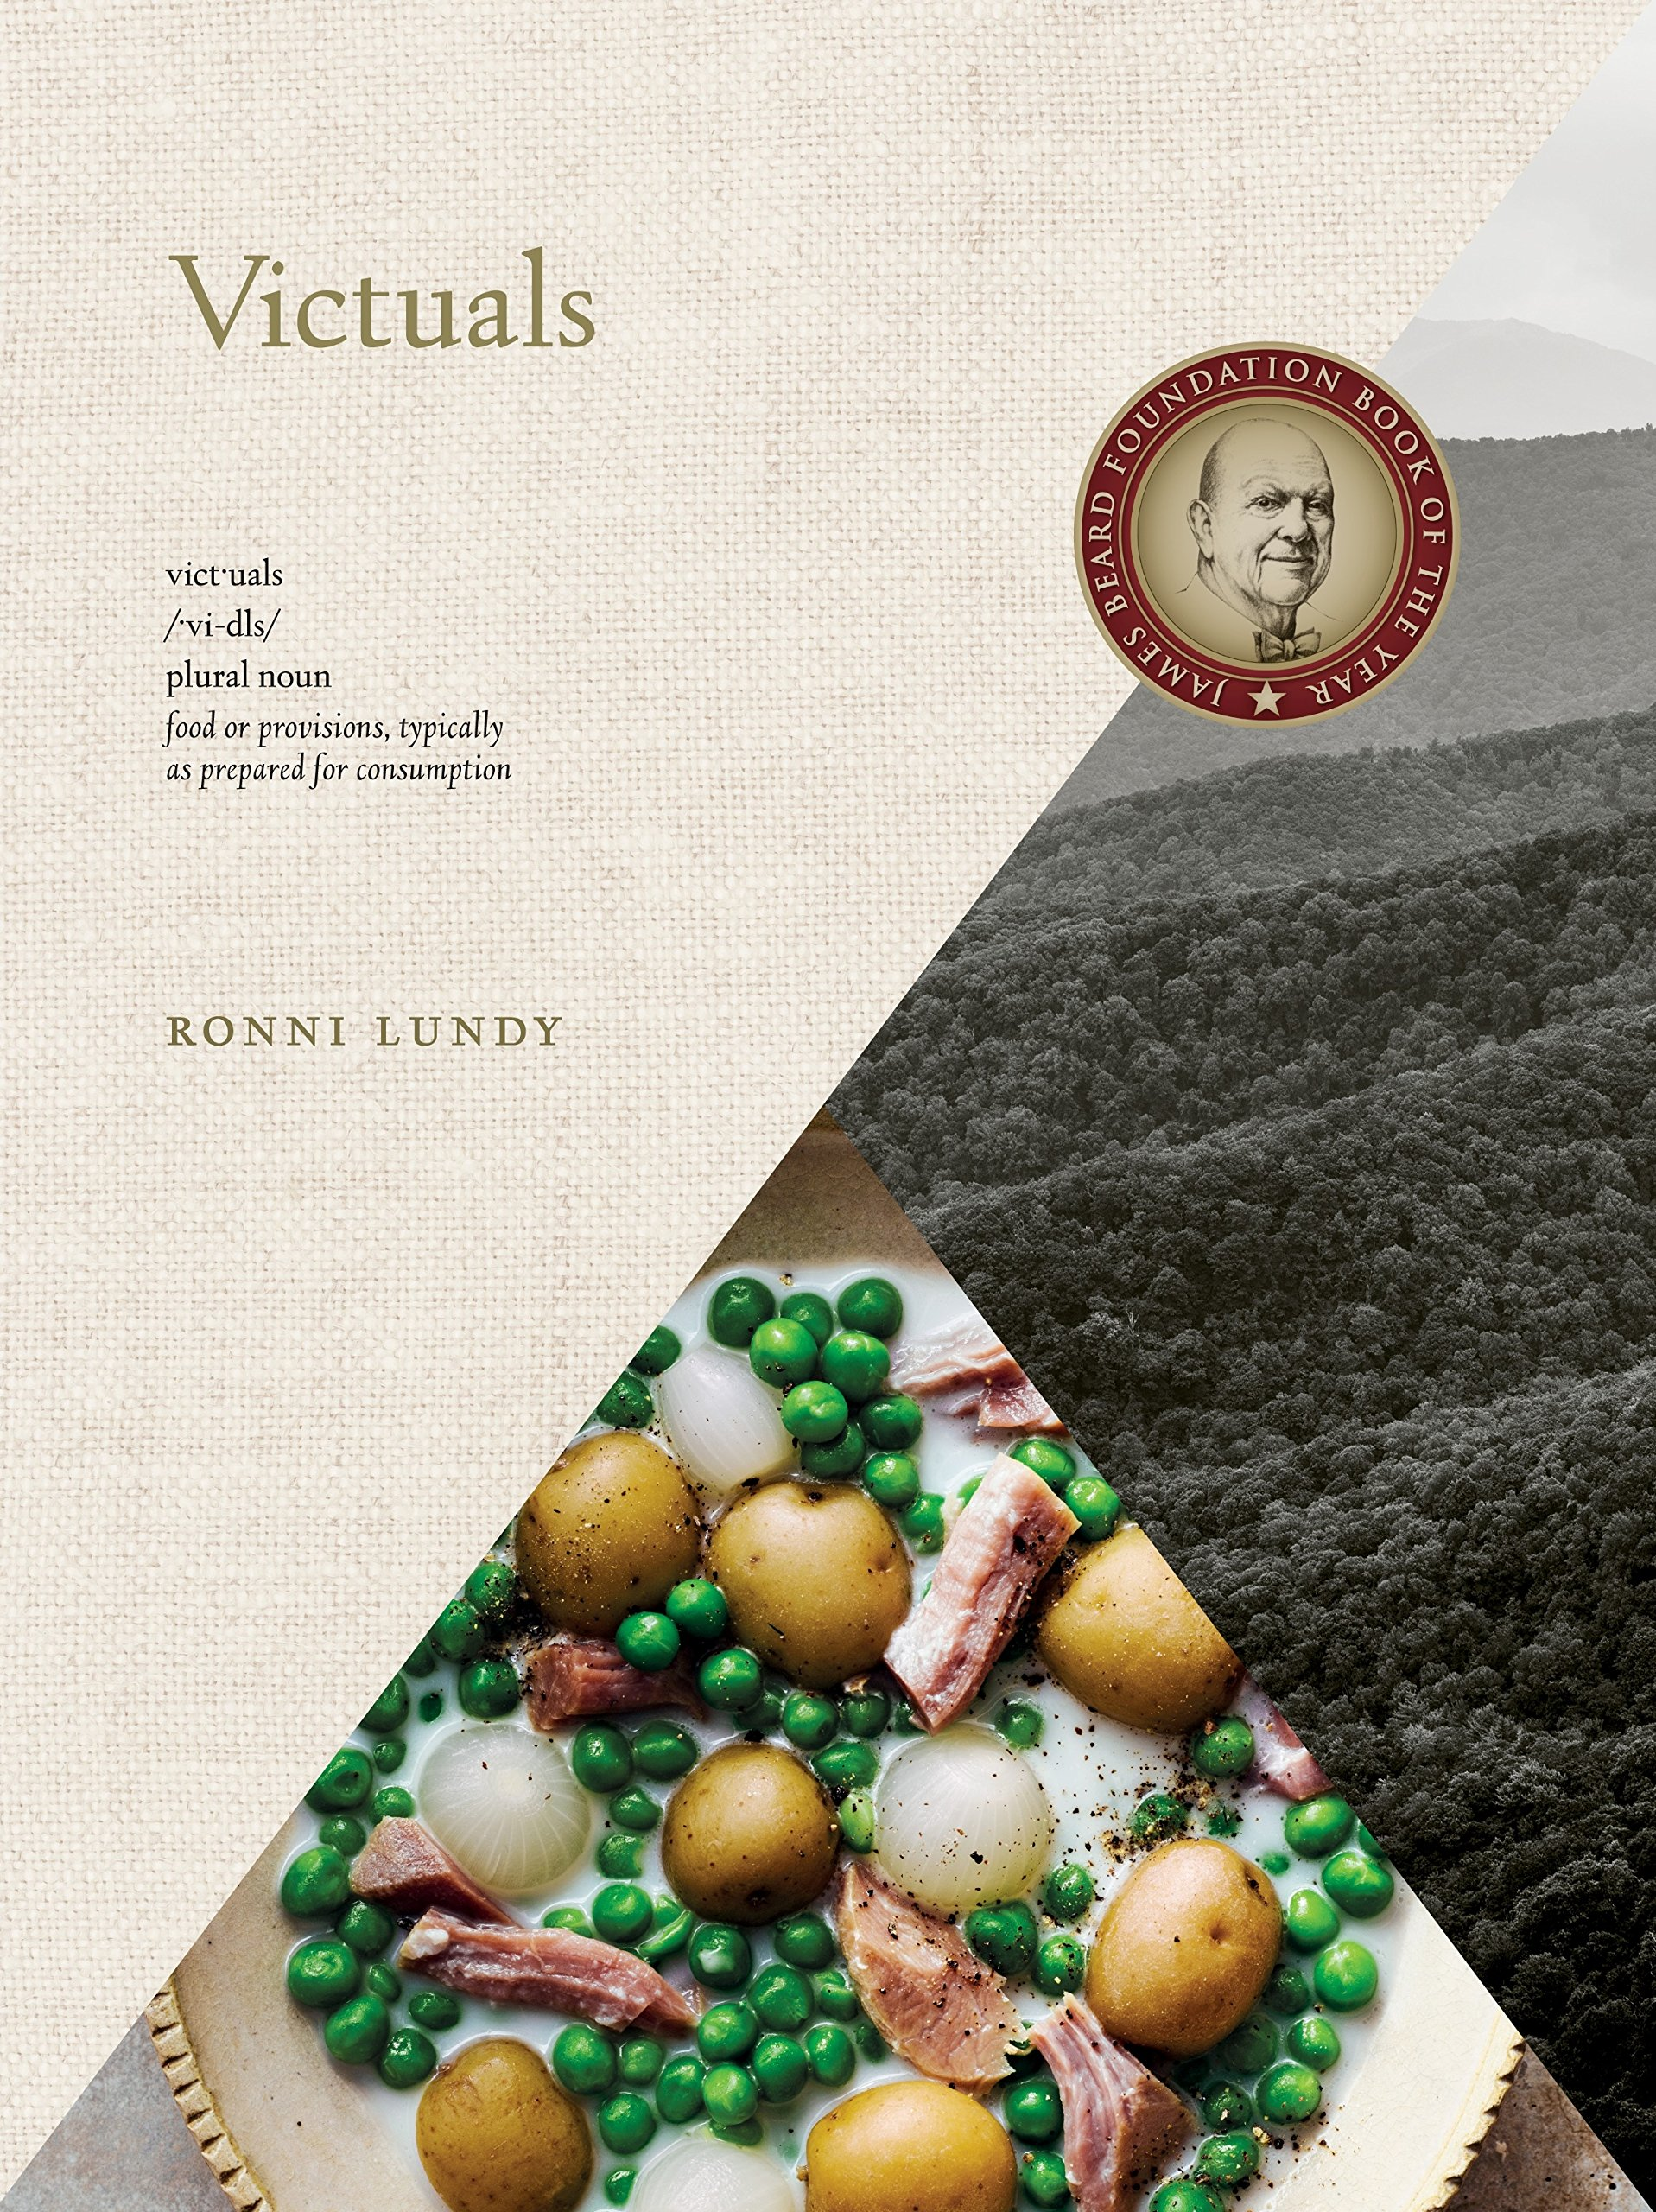 Victuals - At its core, Ronni Lundy's cookbook,